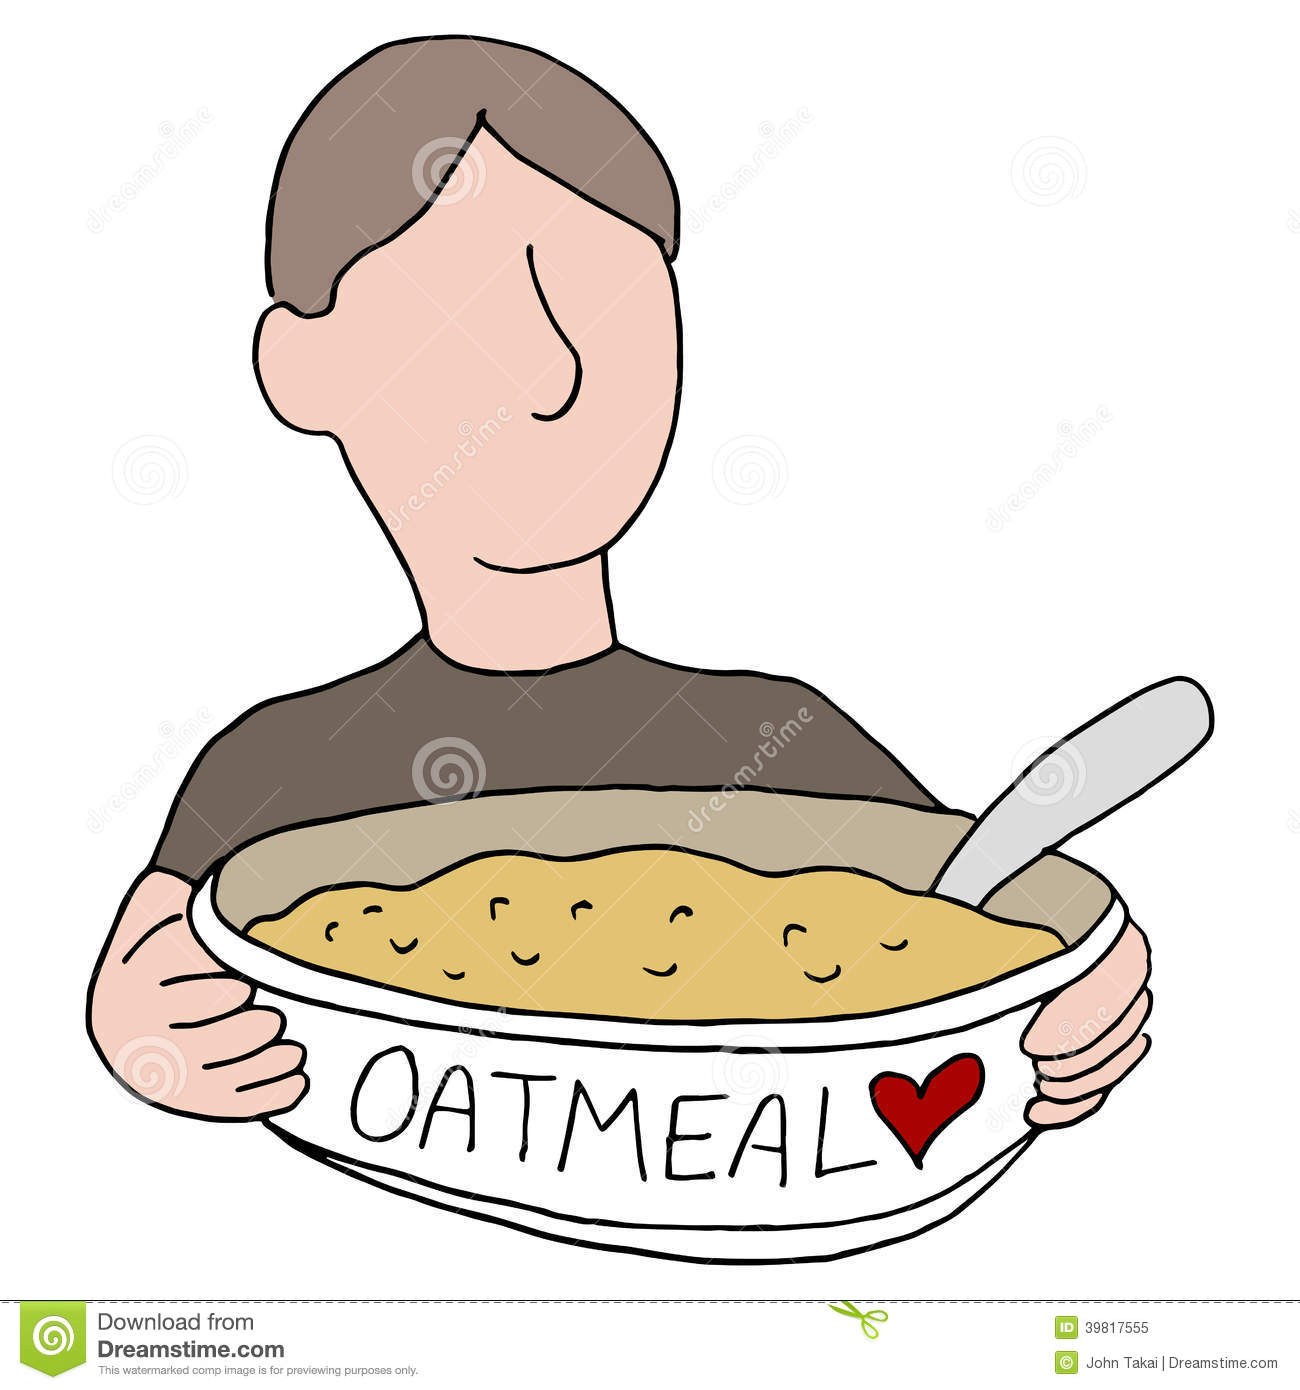 Oatmeal Black And White Clipart - Clipart Suggest